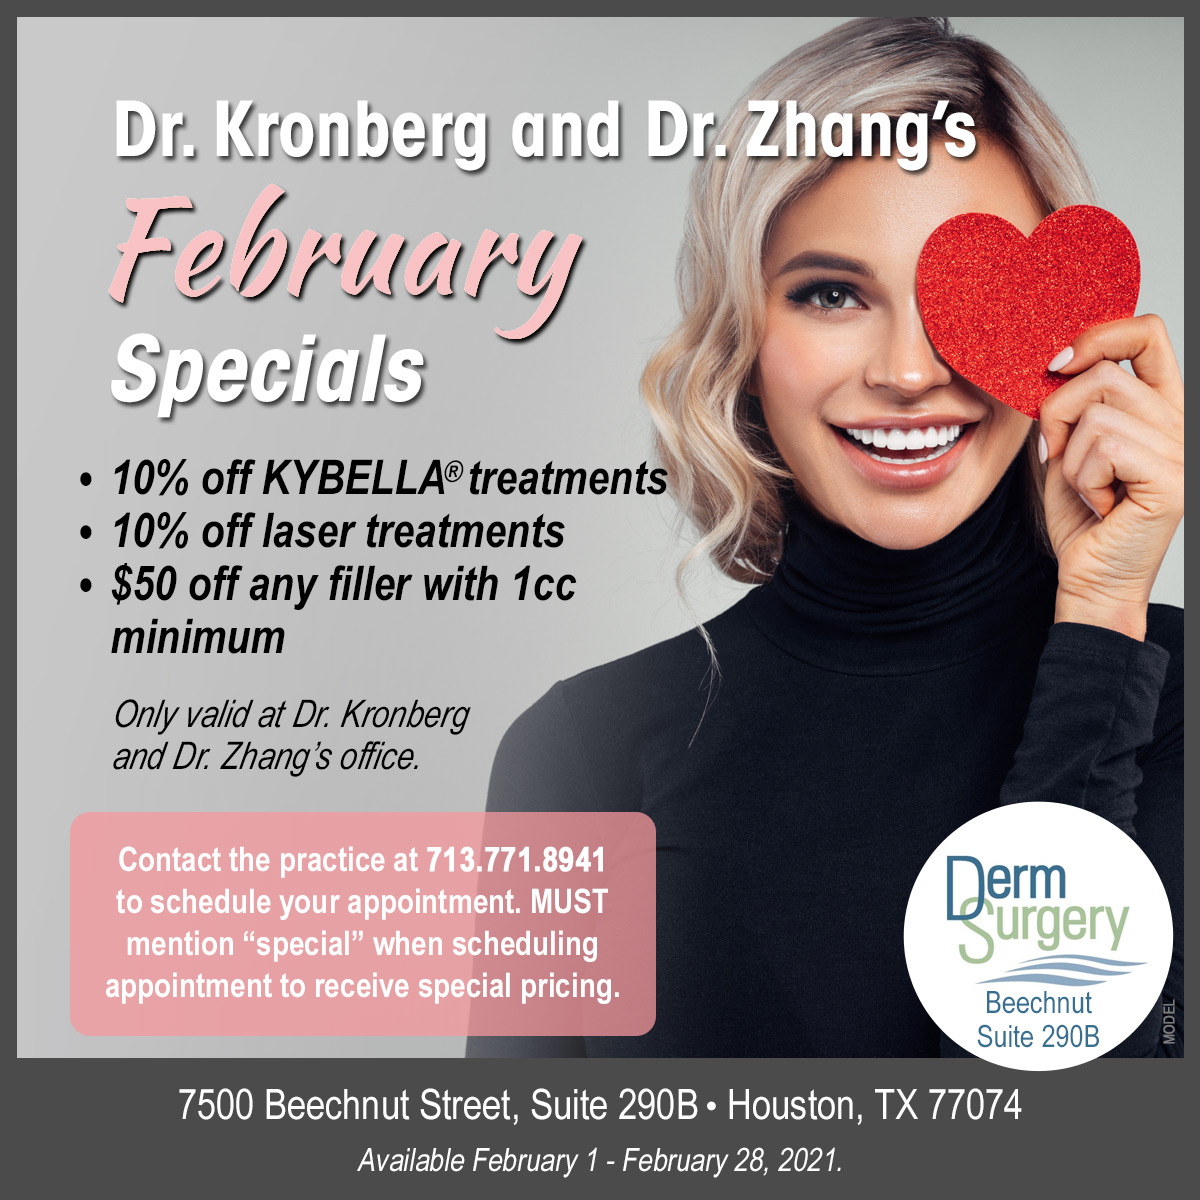 Dr. Kronberg and Dr. Zhang's February Special